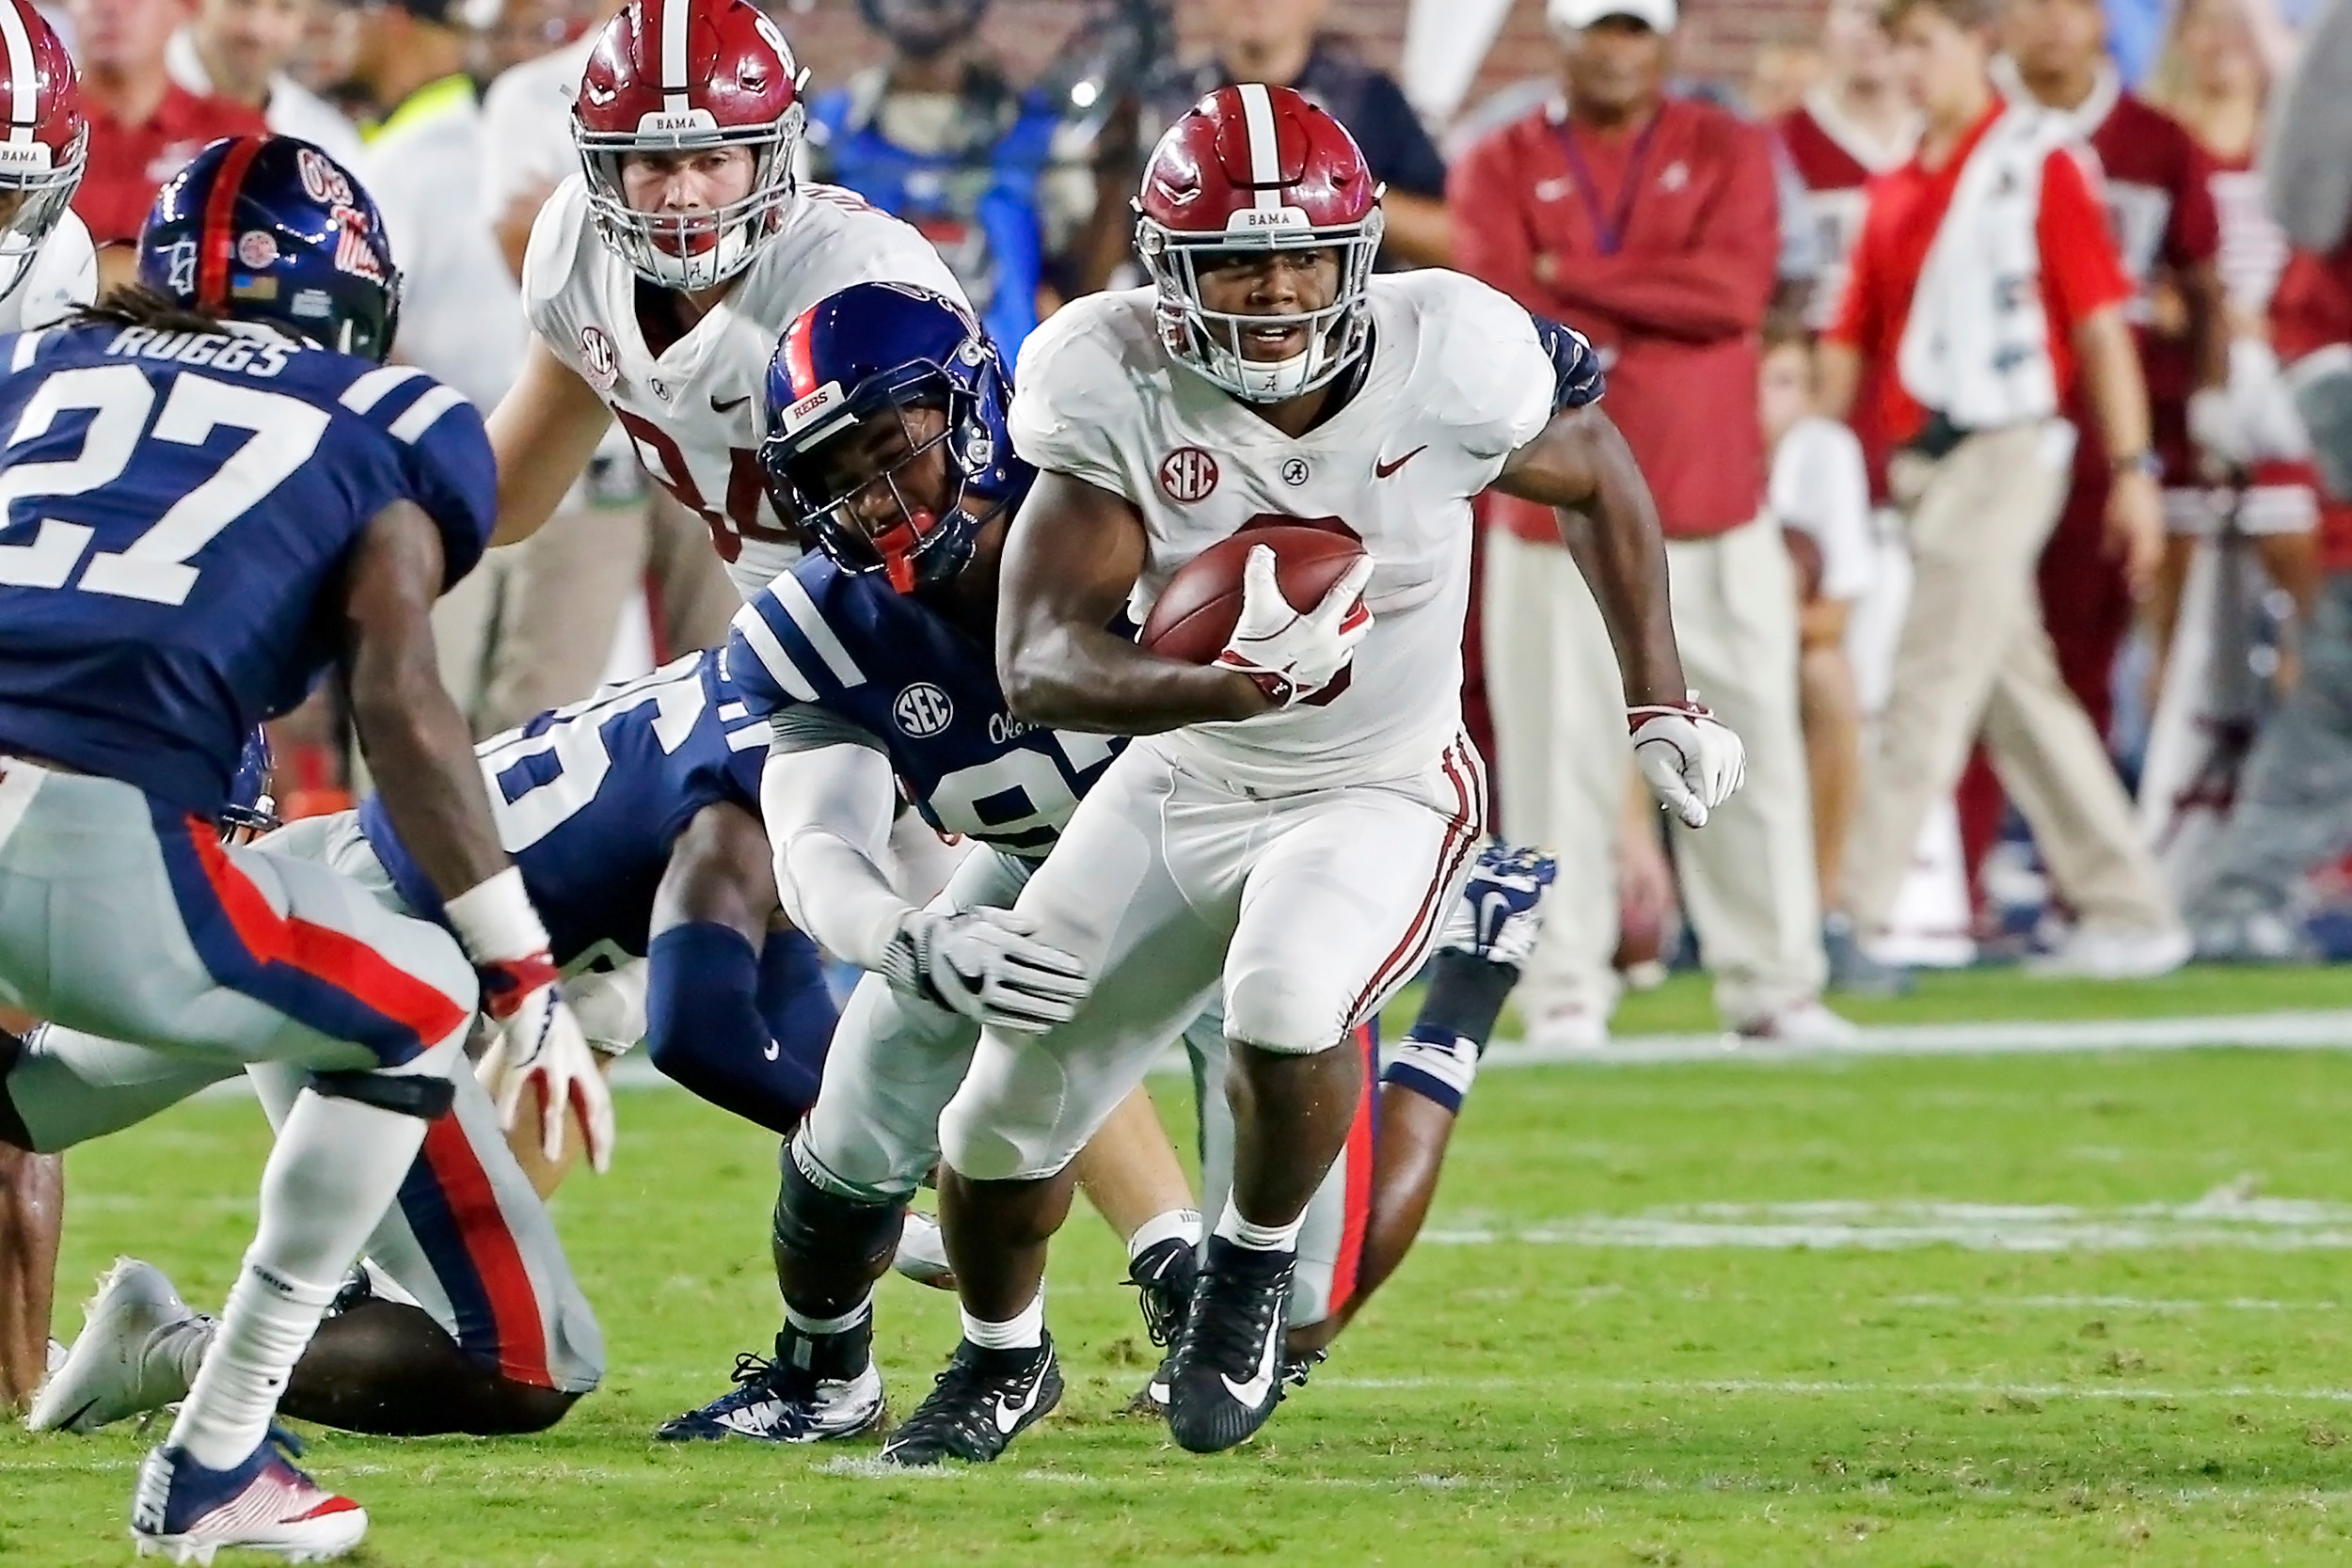 Alabama Crimson Tide running back Josh Jacobs (8) rushes during the game between the University of Alabama and Ole Miss at Vaught-Hemingway Stadium. Jason Clark / Daily Mountain Eagle